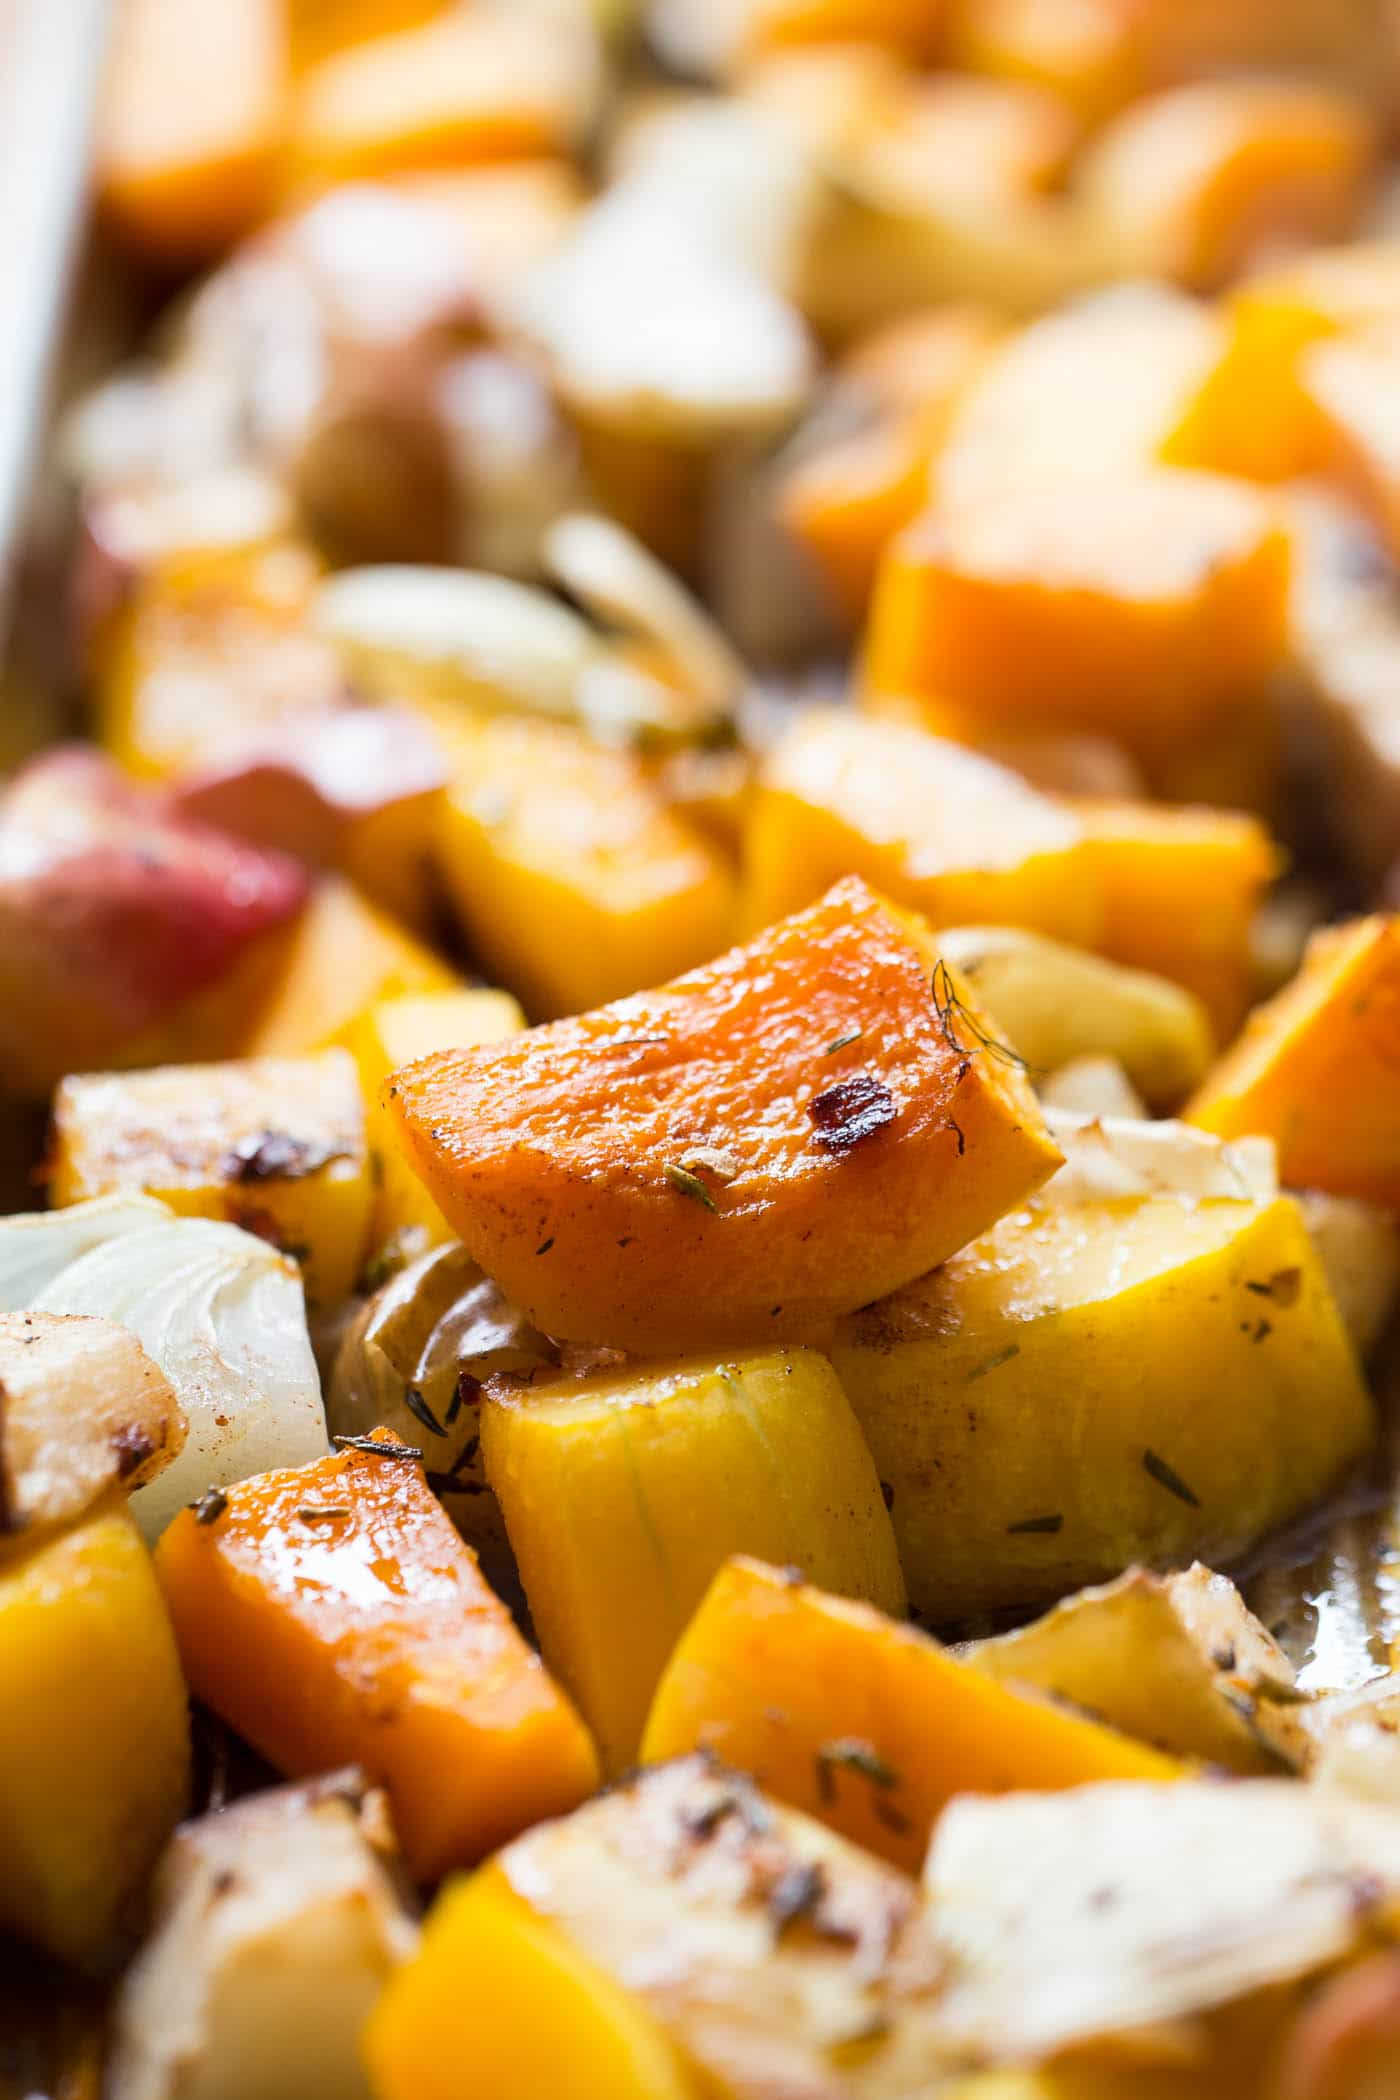 Roasted vegetables are the perfect base for this Butternut Squash & Apple Soup!